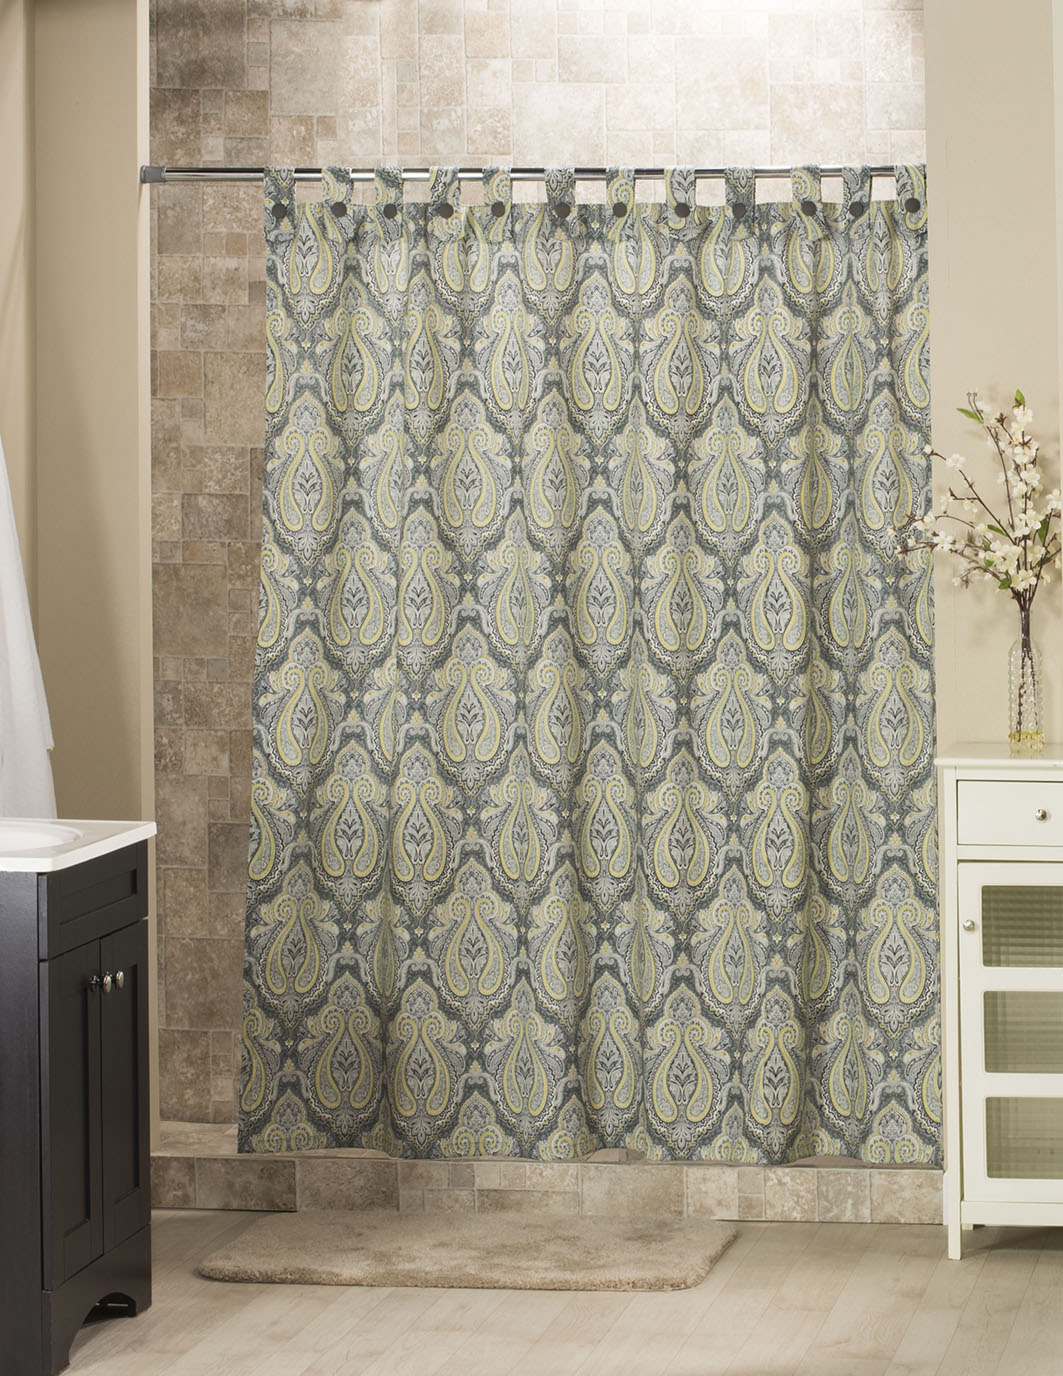 Park Avenue Tab Shower Curtain